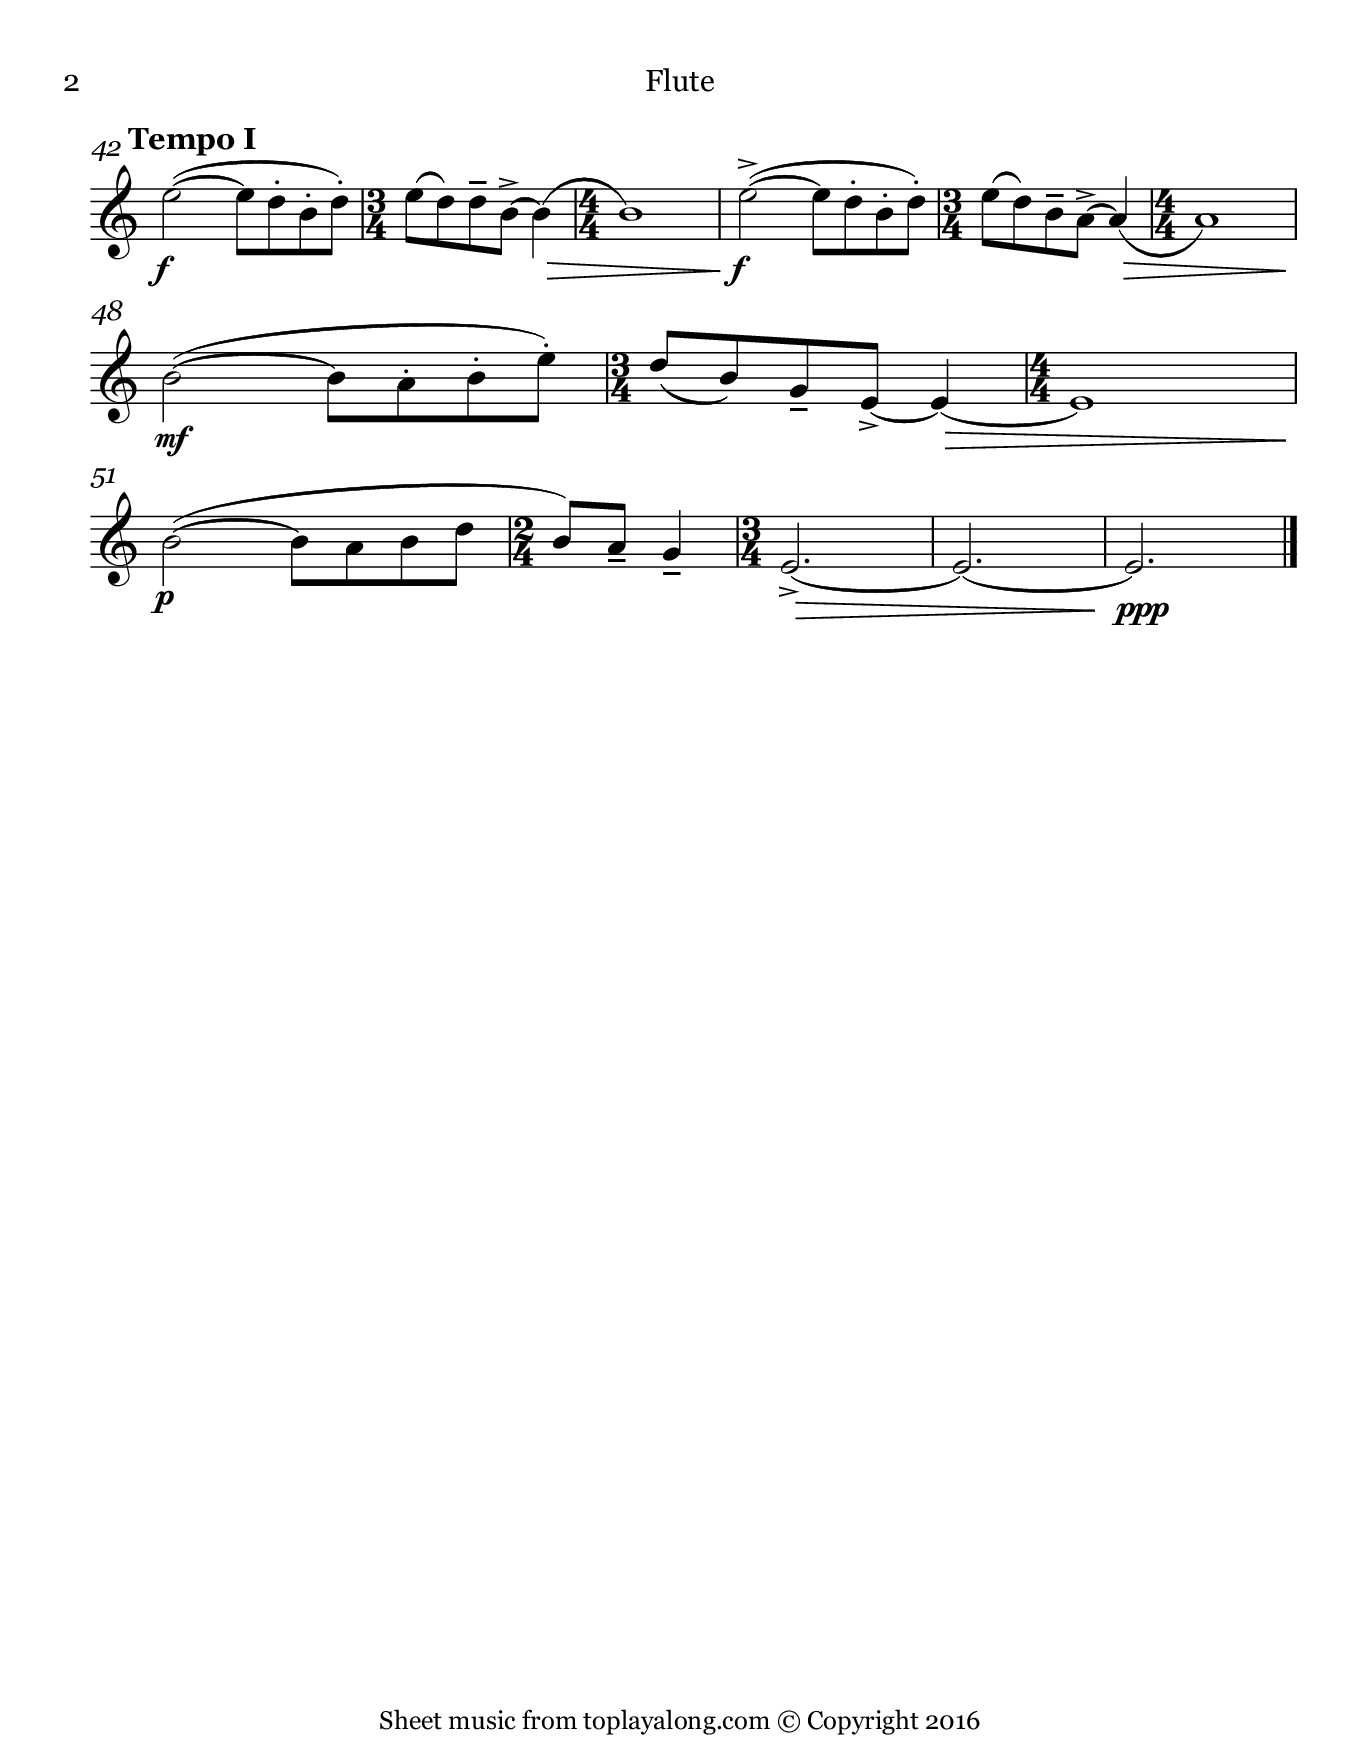 Evening in the Village by Bartok. Sheet music for Flute, page 2.